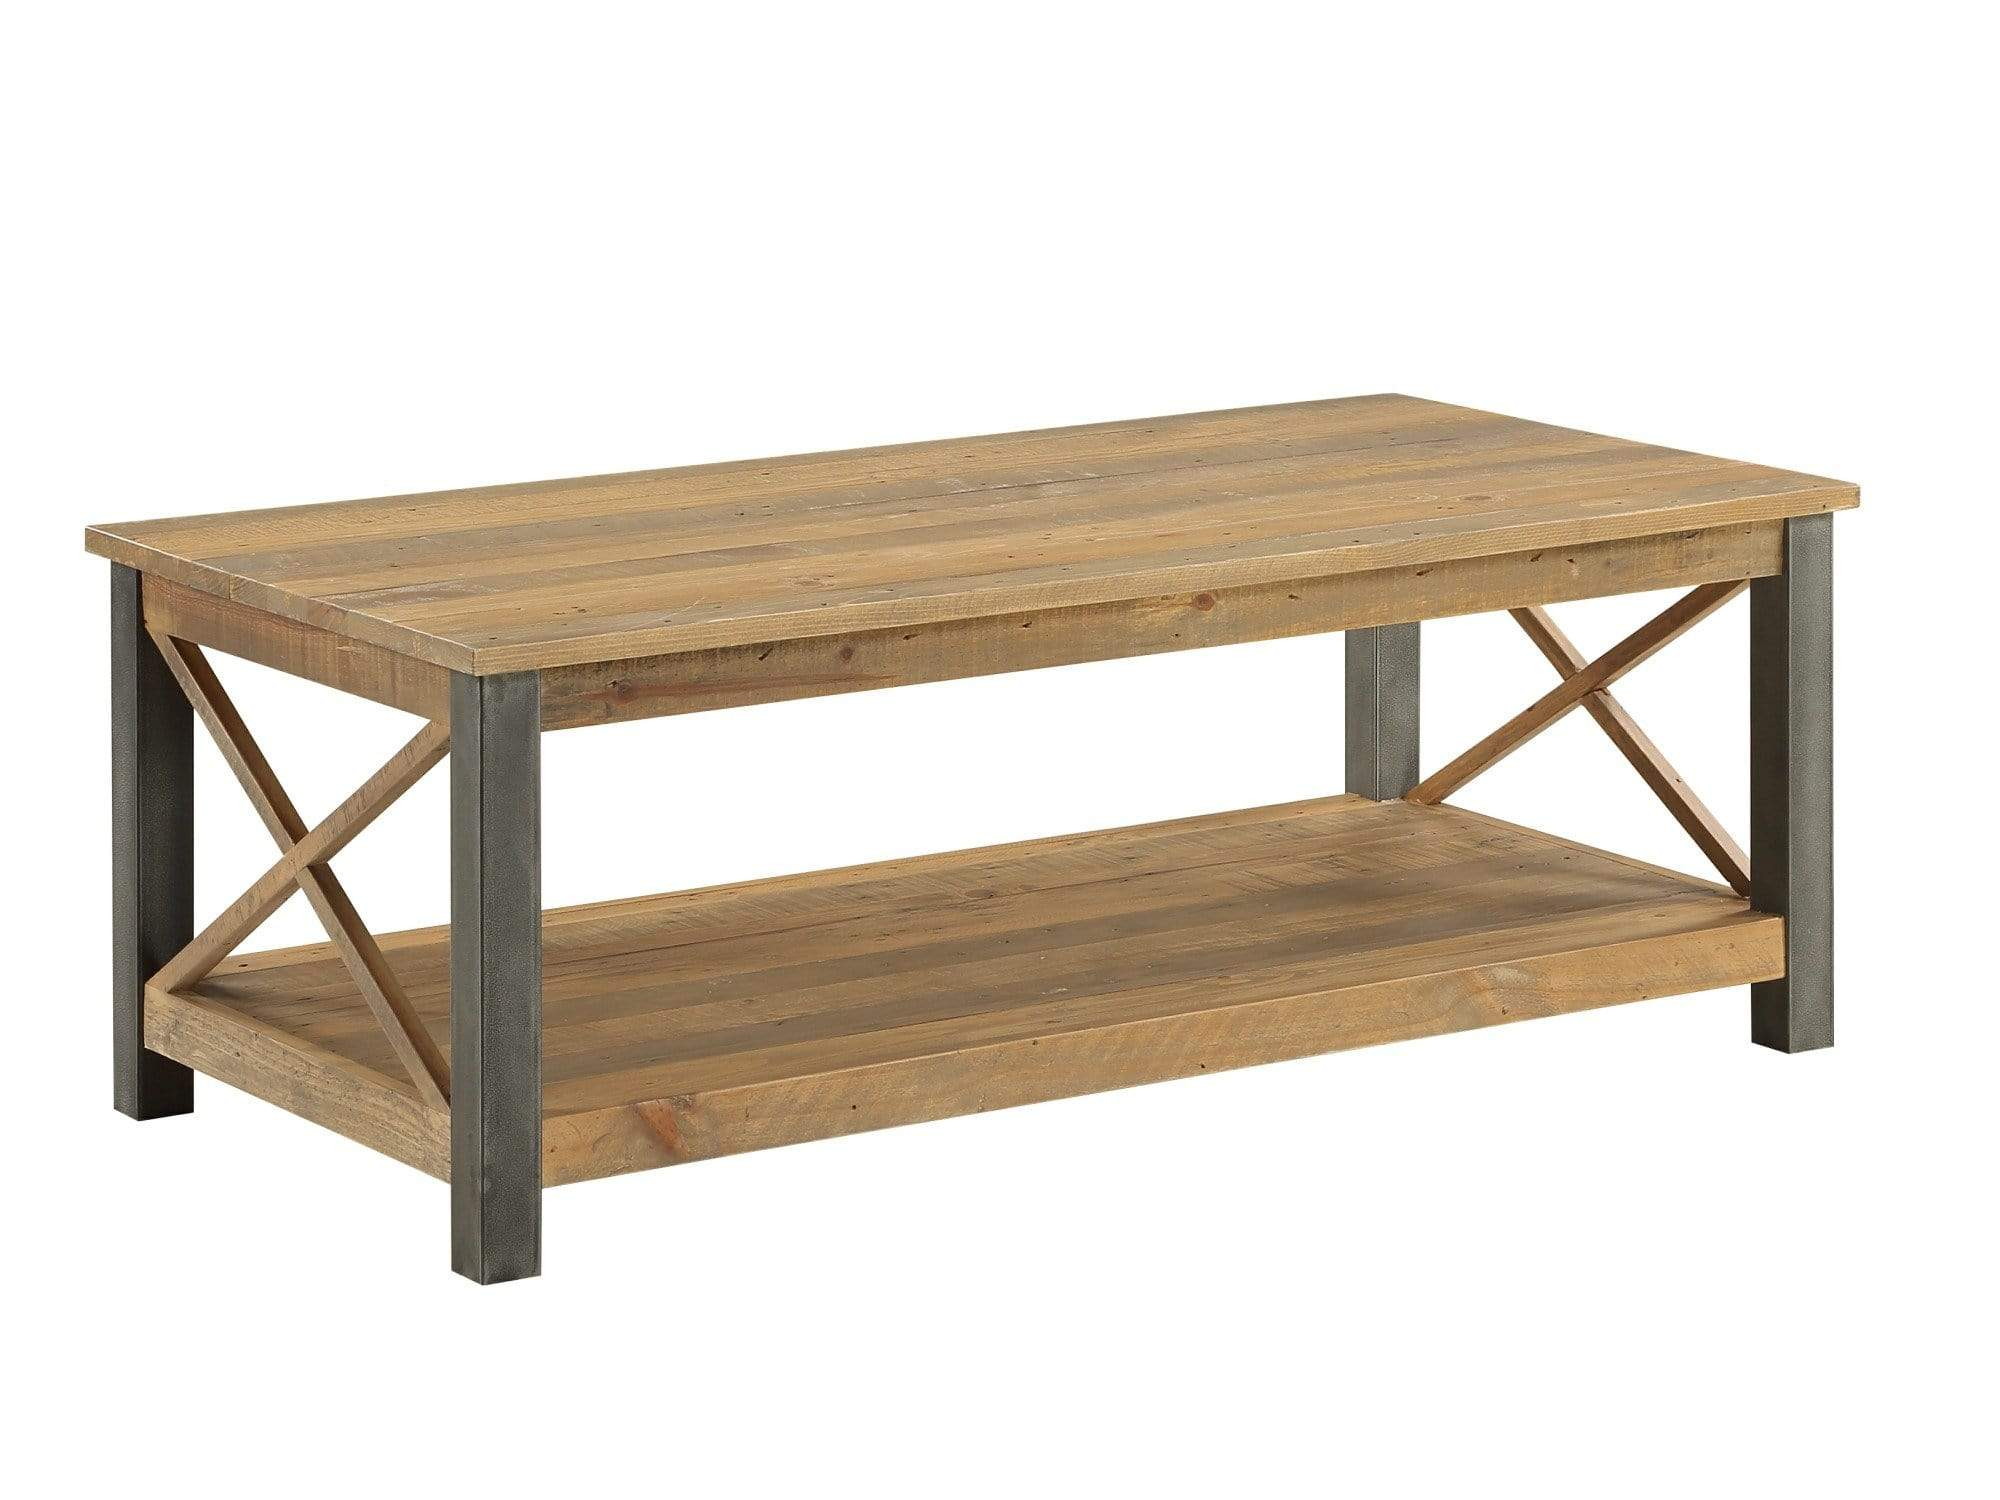 Large industrial coffee table with distressed steel legs